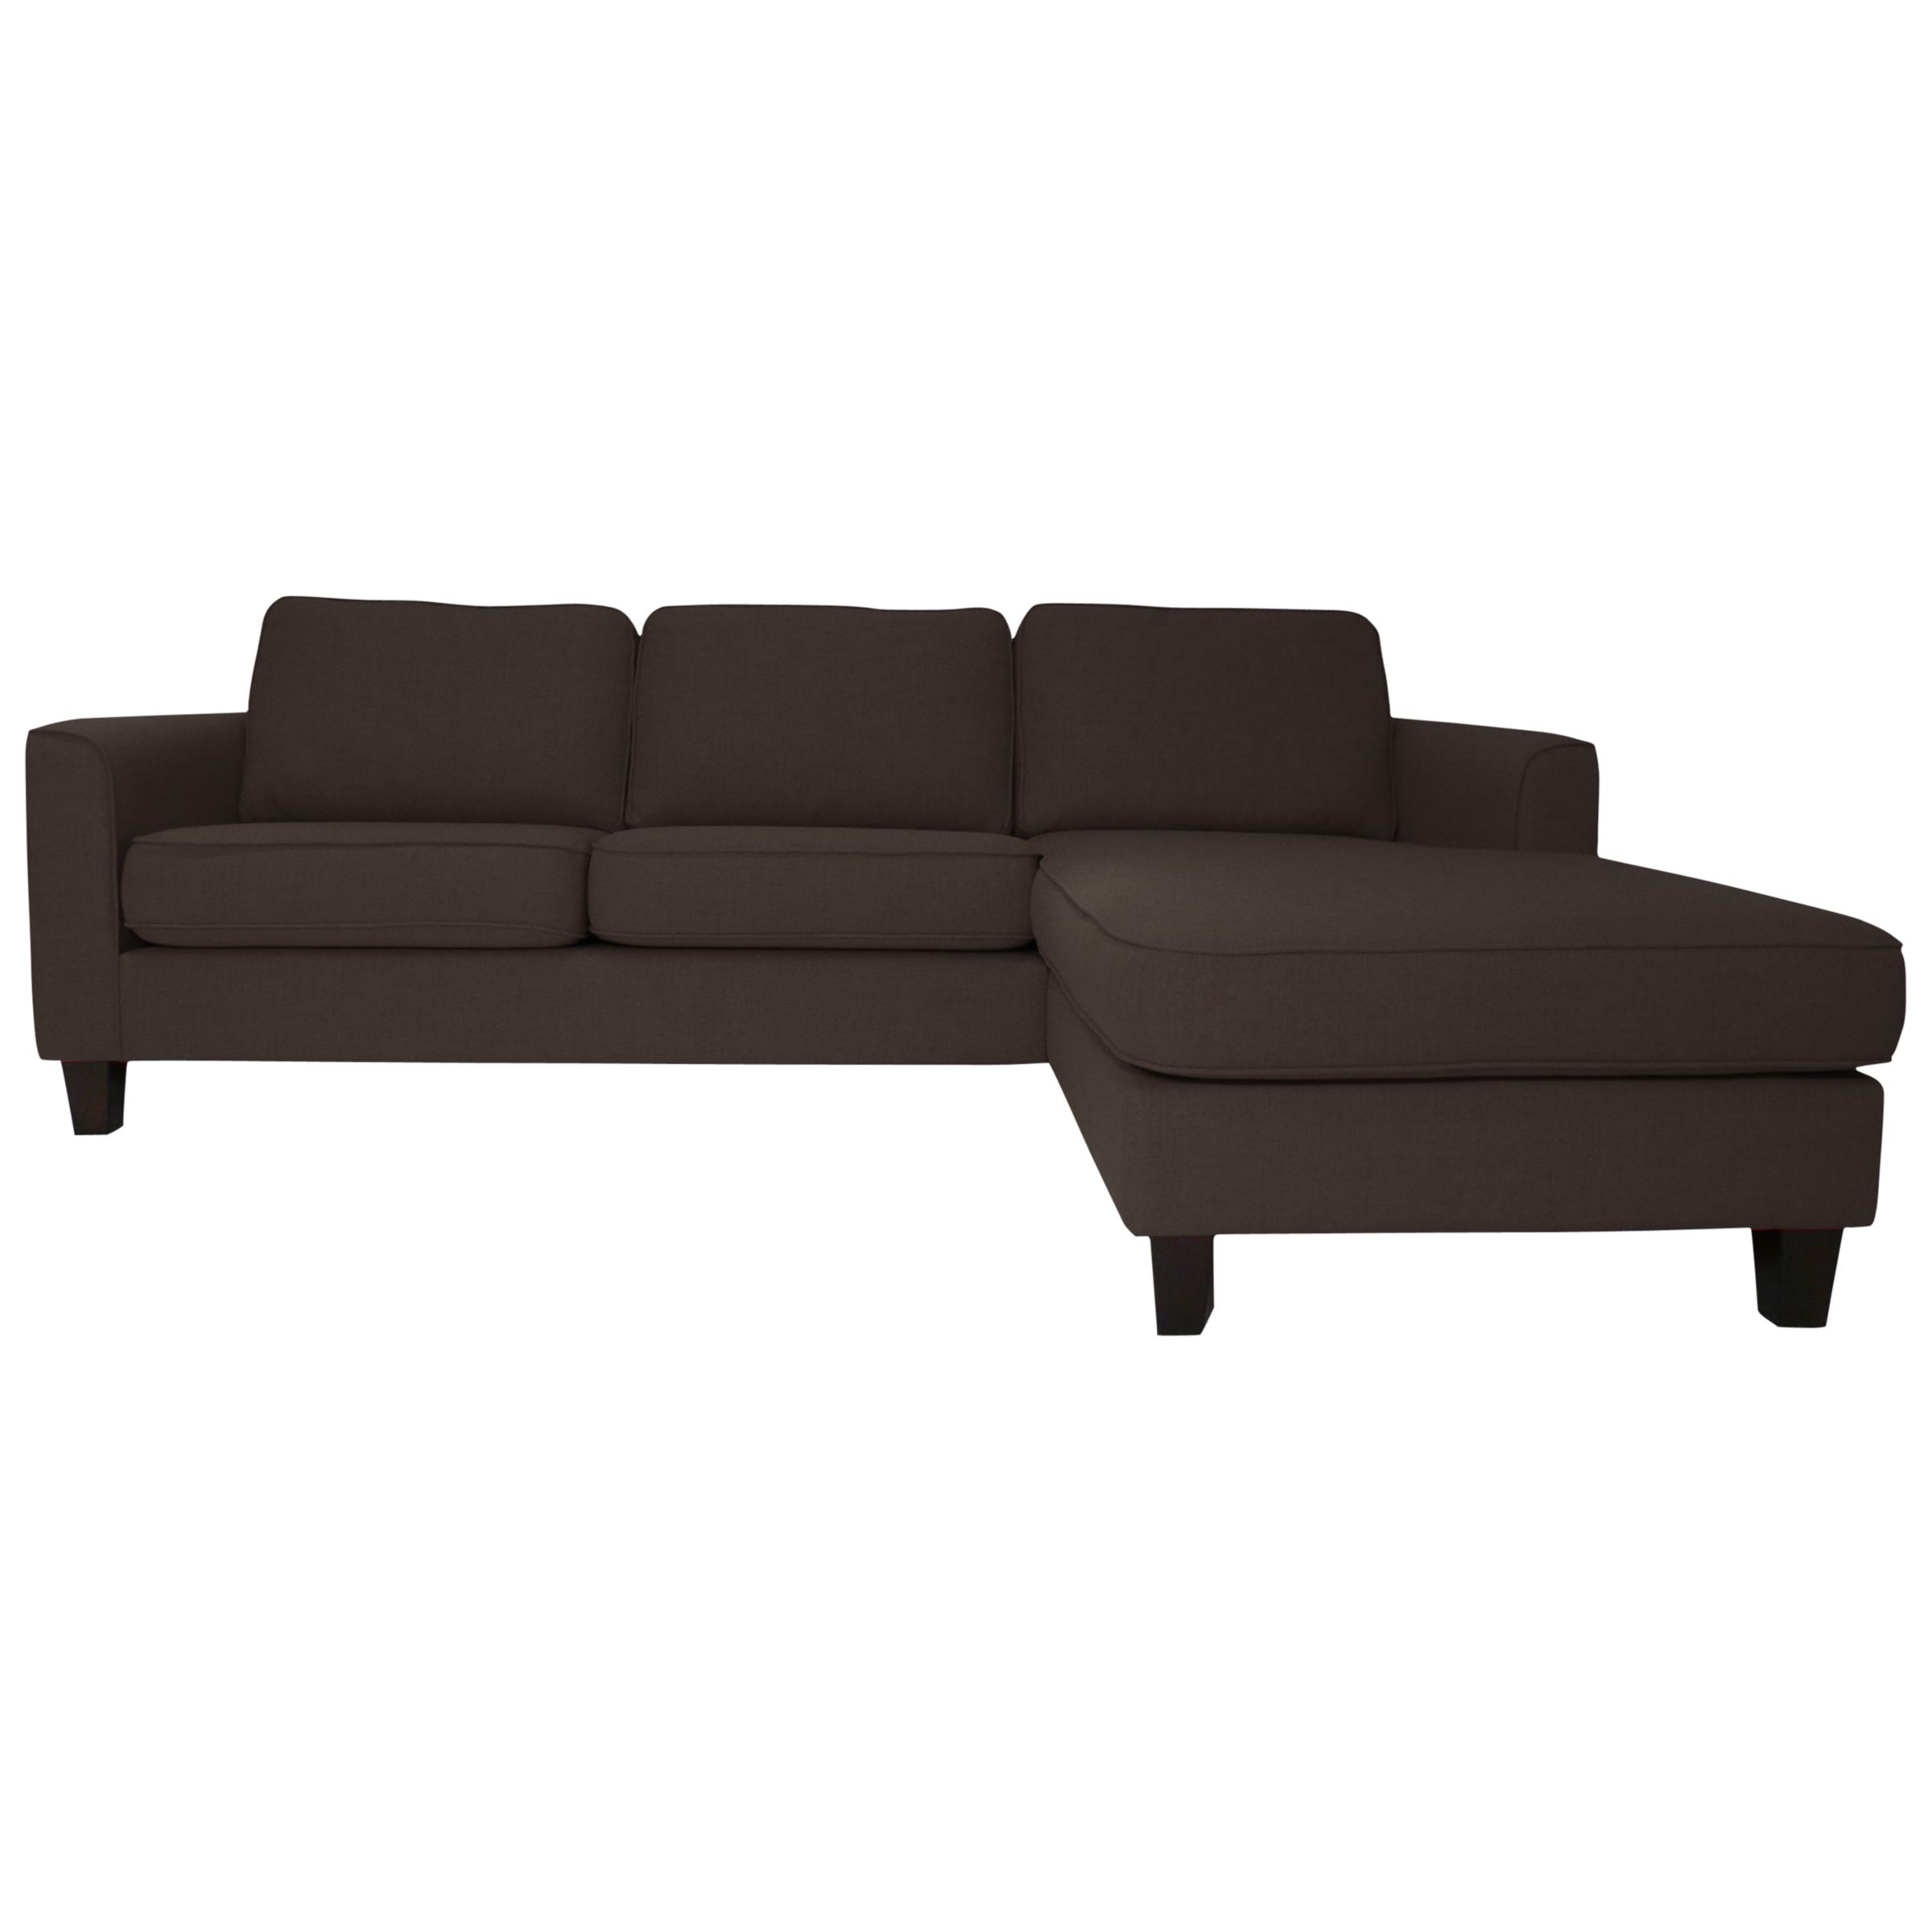 john lewis portia lhf chaise end sofa charcoal review